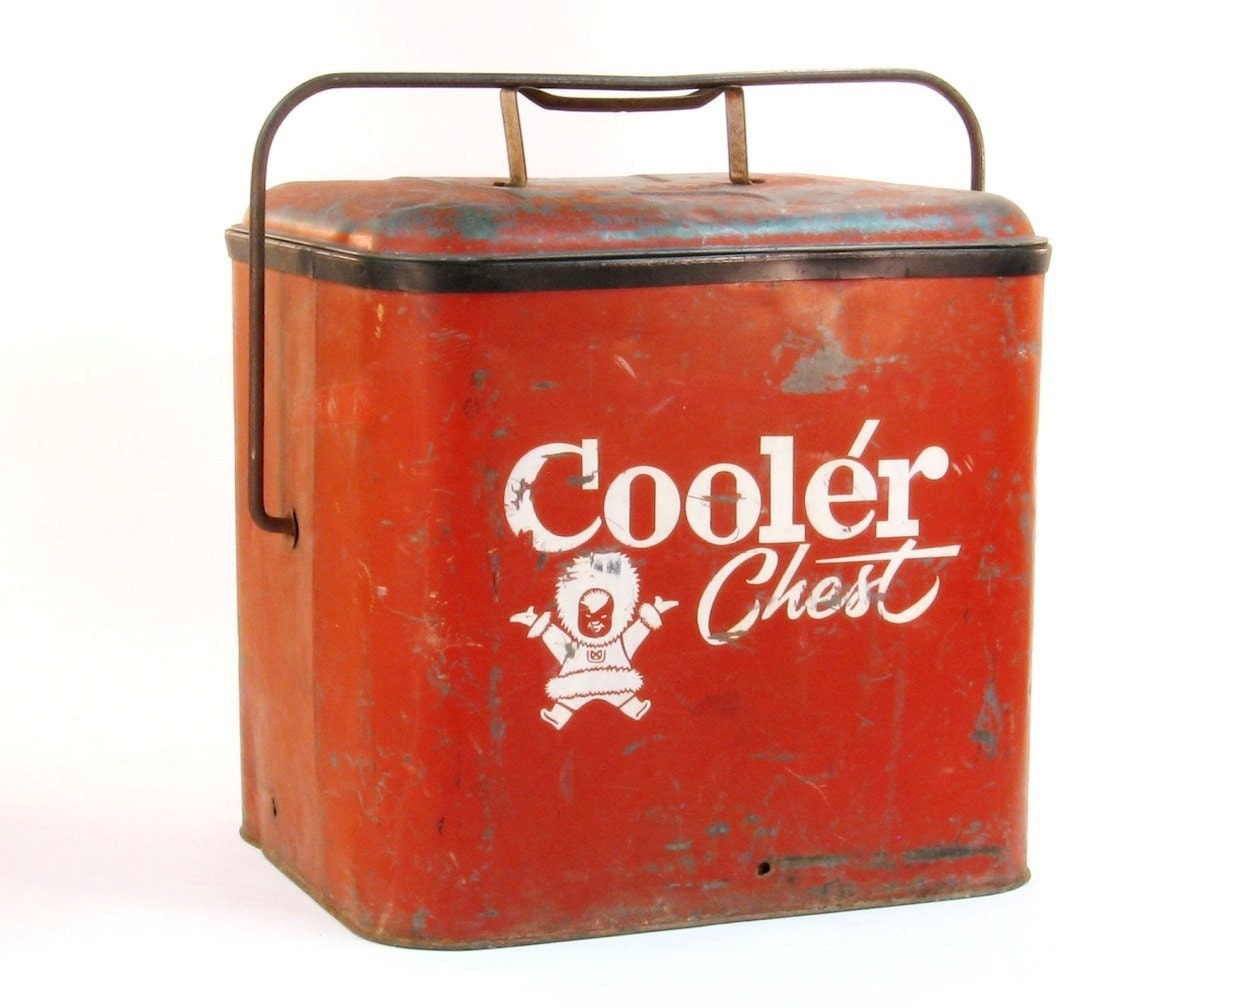 Vintage 1950 S Red Metal Cooler Chest With Bottle By